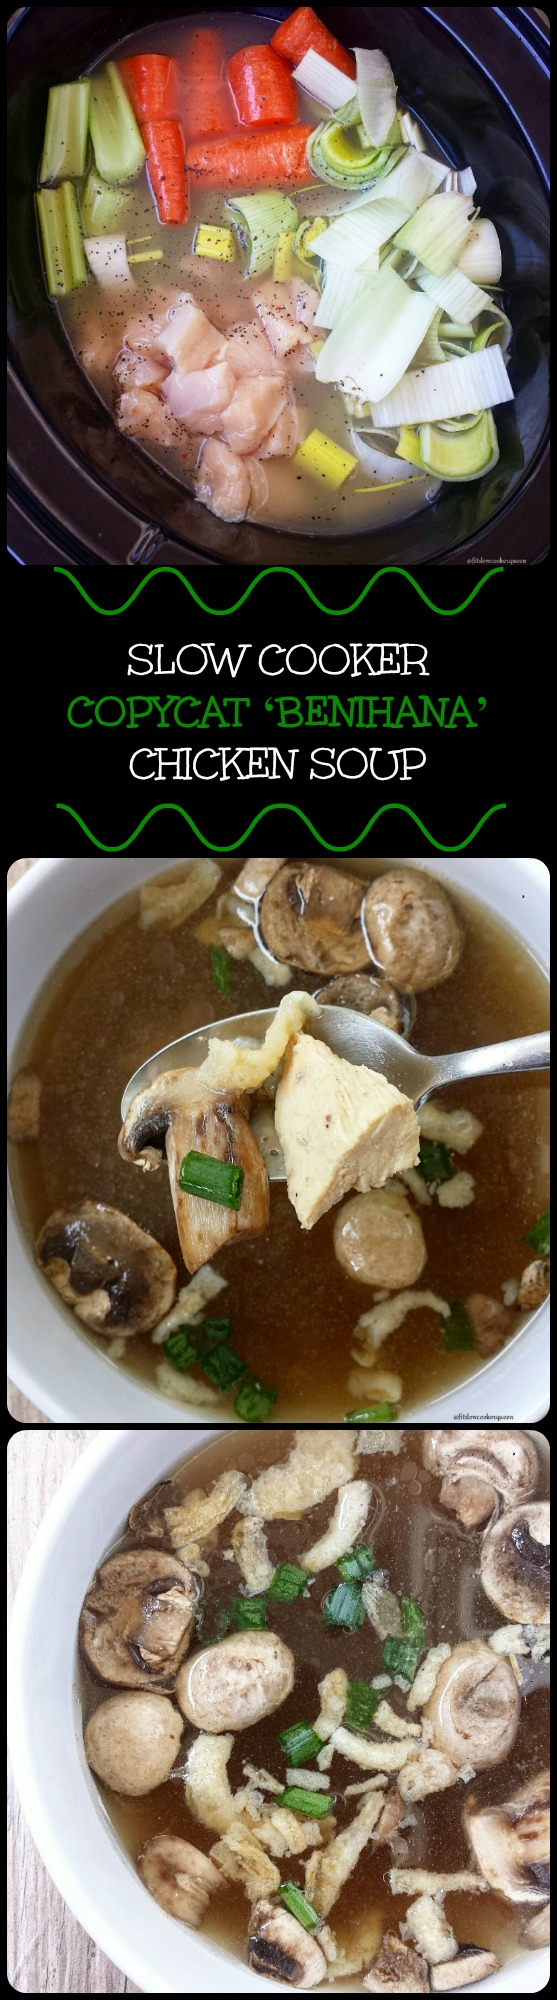 This homemade version of Benihana's famous onion soup is not only super easy but healthy too. Add in chicken to take it from appetizer to flavorful meal.